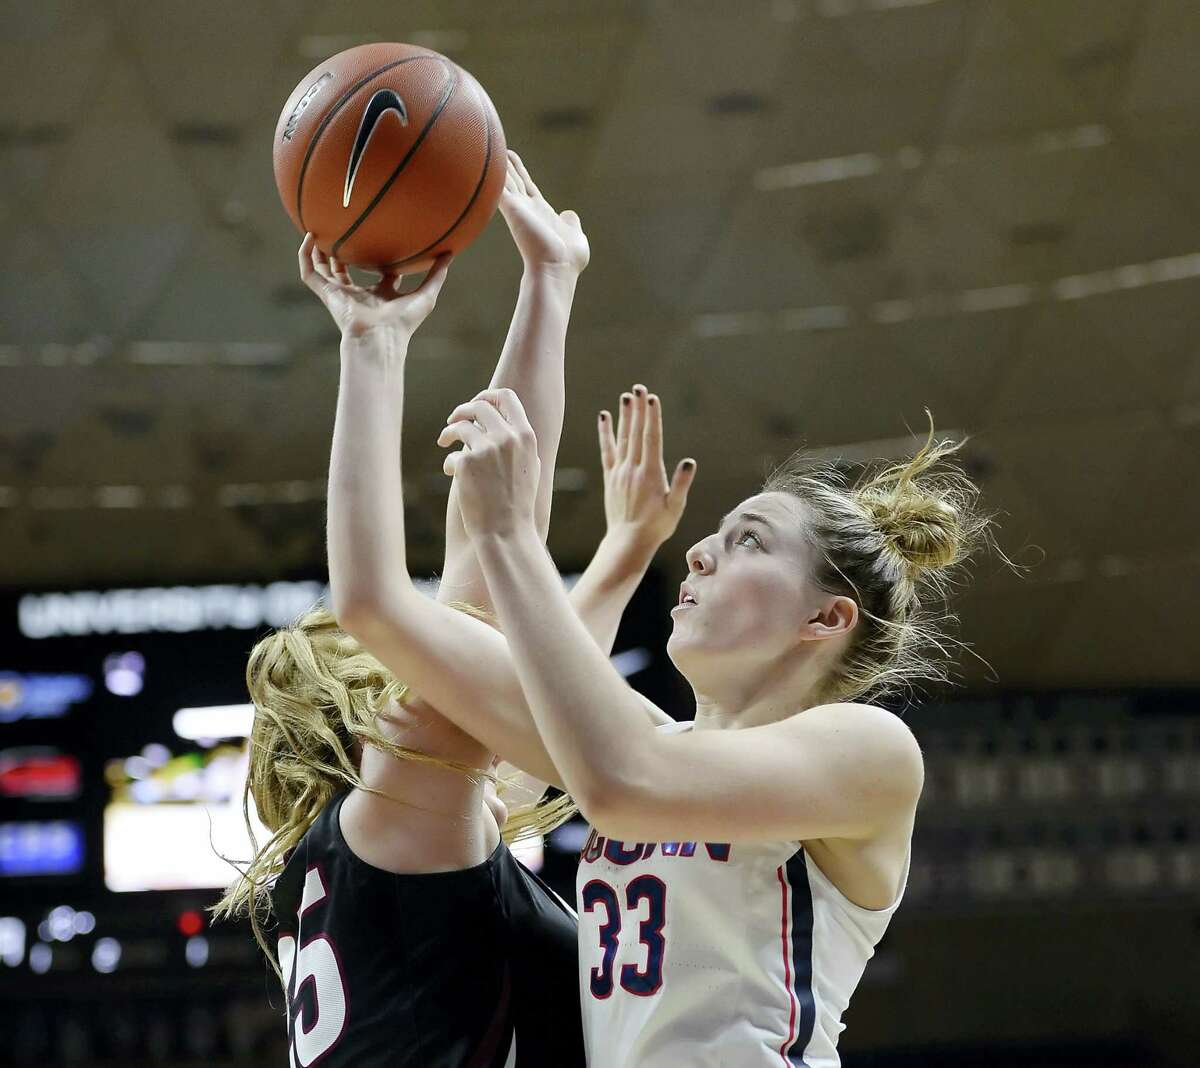 UConn's Katie Lou Samuelson, right, shoots as Indiana University of Pennsylvania's Maura D'Anna defends in the second half of UConn's 111-39 exhibition win at Gampel Pavilion.